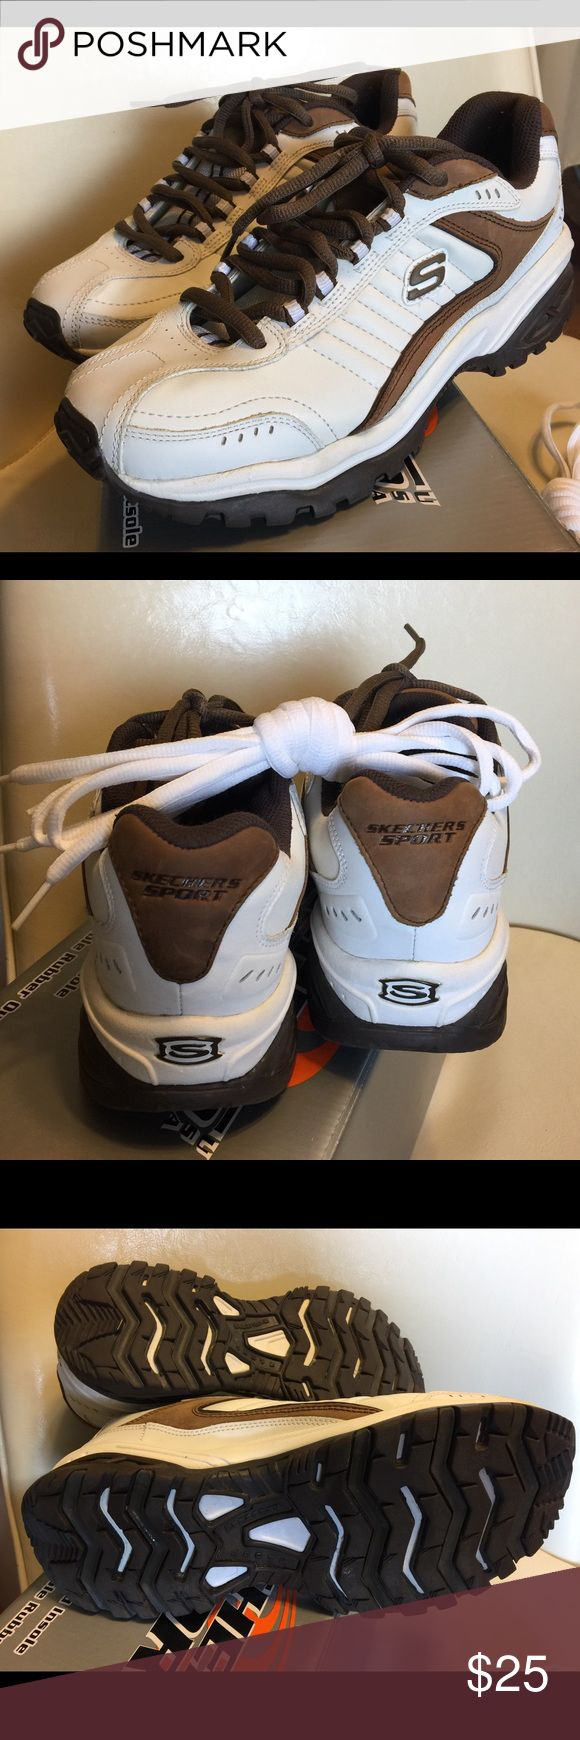 Tennis Shoes Never worn still in box!Skechers Sport men's sneaker. Size 9. Brown and white with matching colored shoelaces. New older model shoes. $25. Skechers Shoes Athletic Shoes